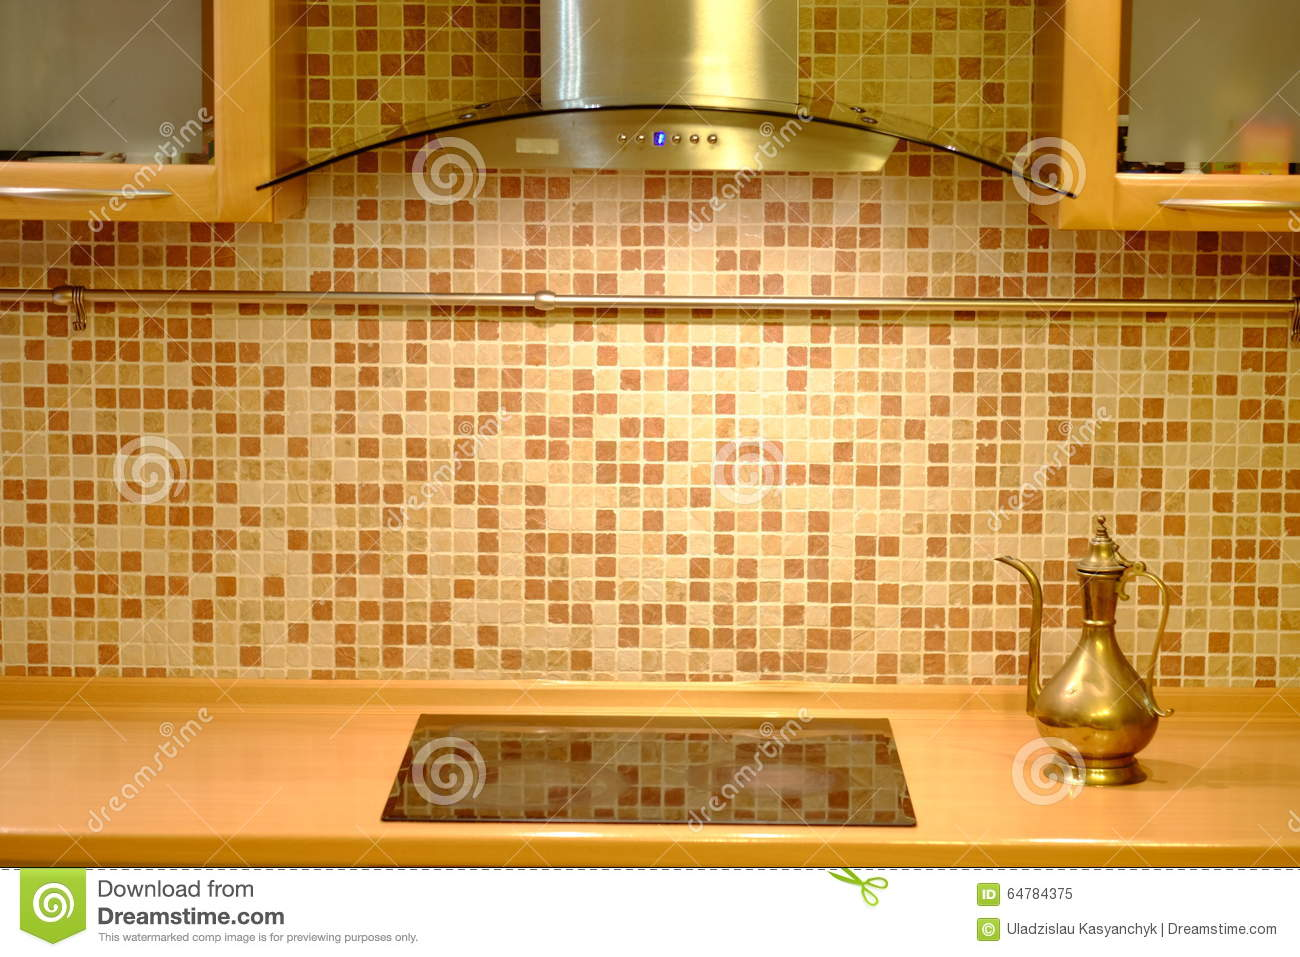 Copper Kettle On The Kitchen Wall Background Stock Image